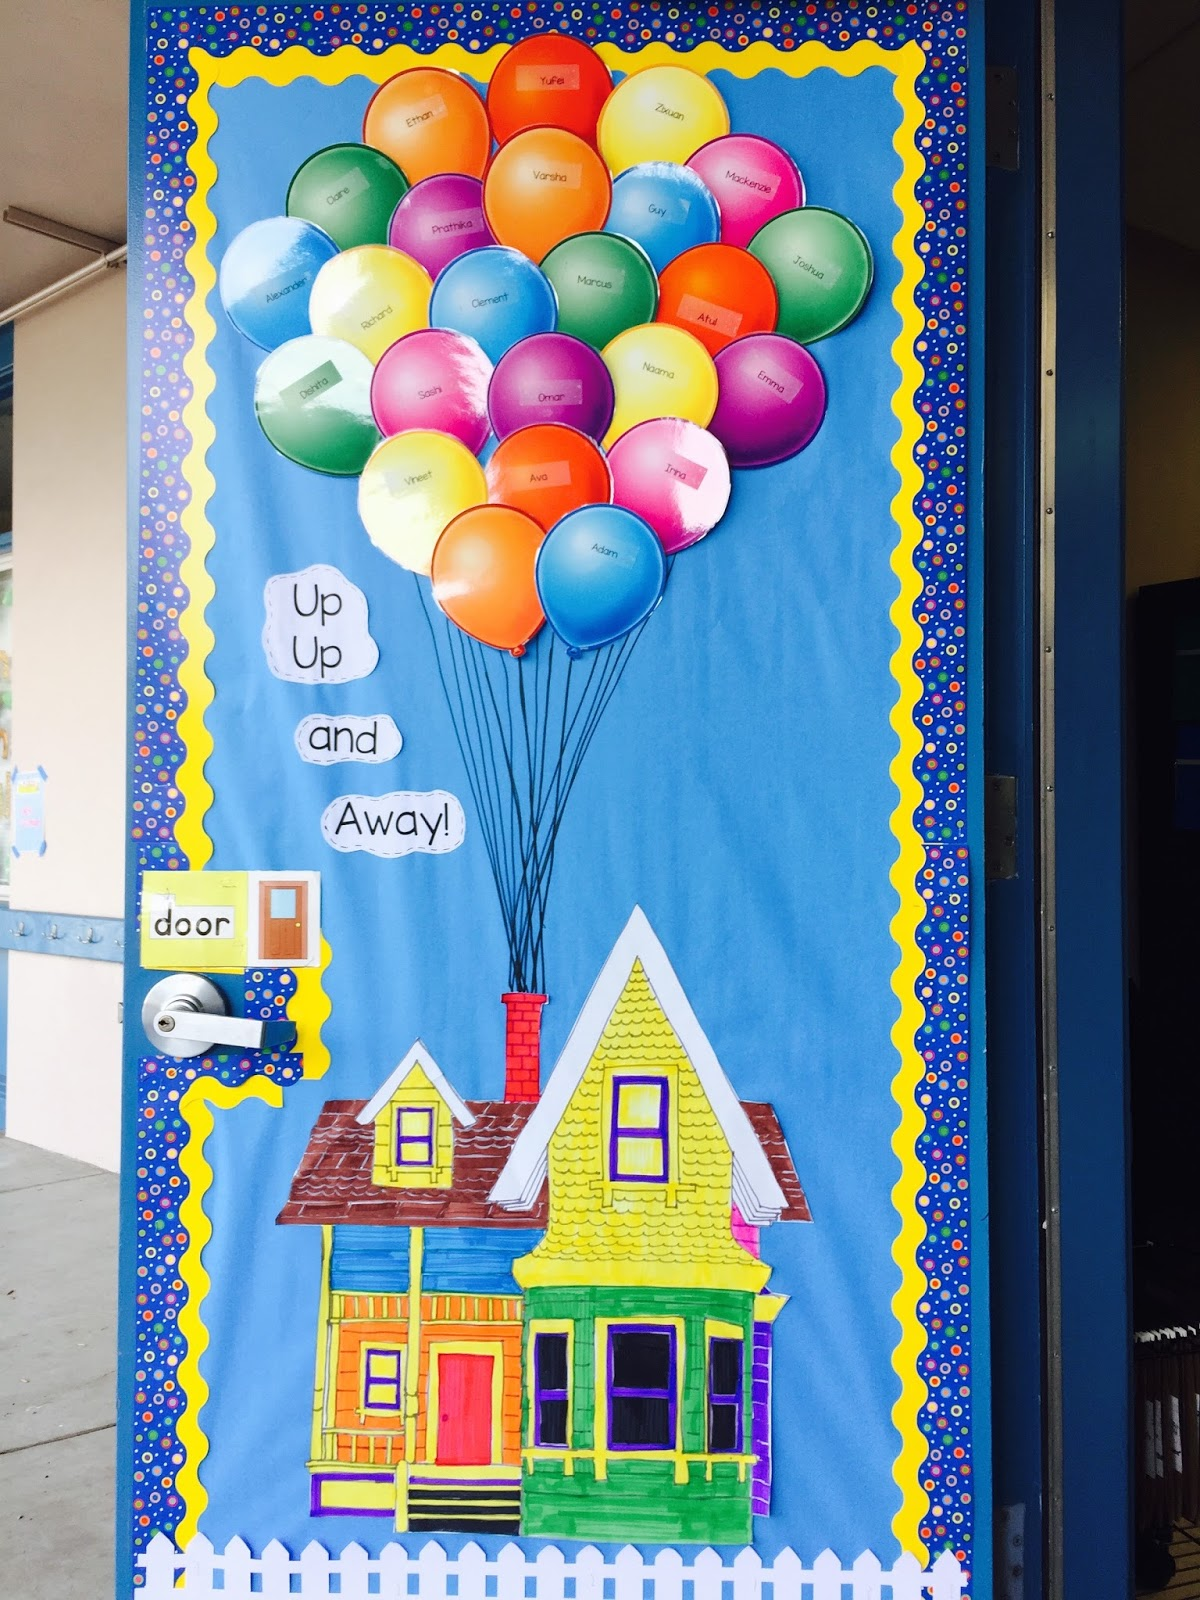 Mrs. Peterson's Playground: Up, Up and Away